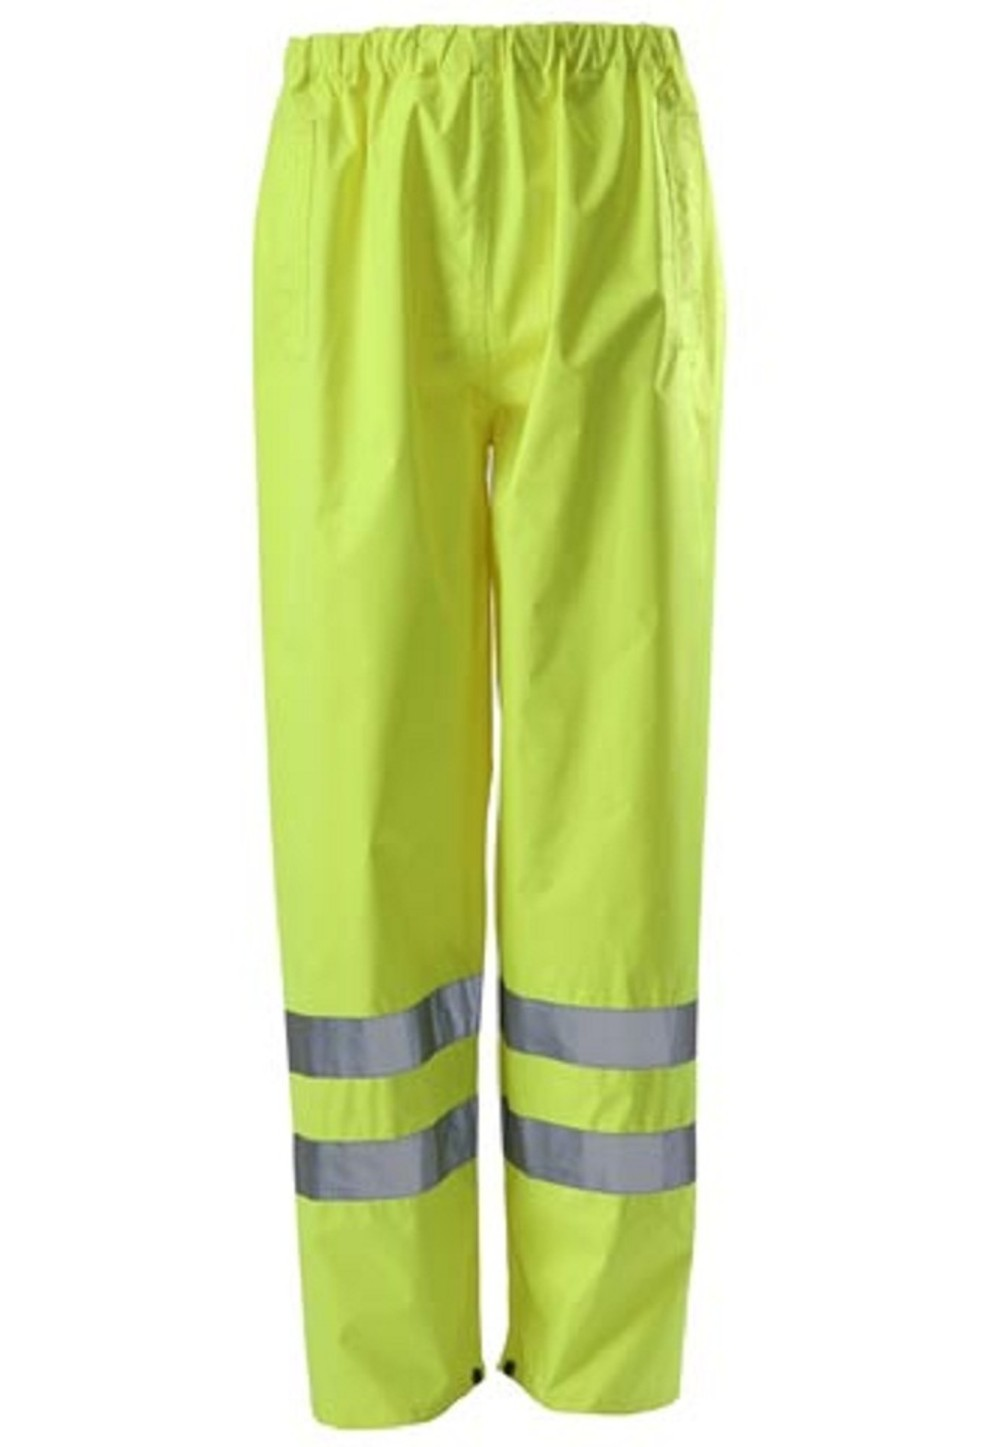 high-visibility-trousers-extra-large-ref-80202.jpg